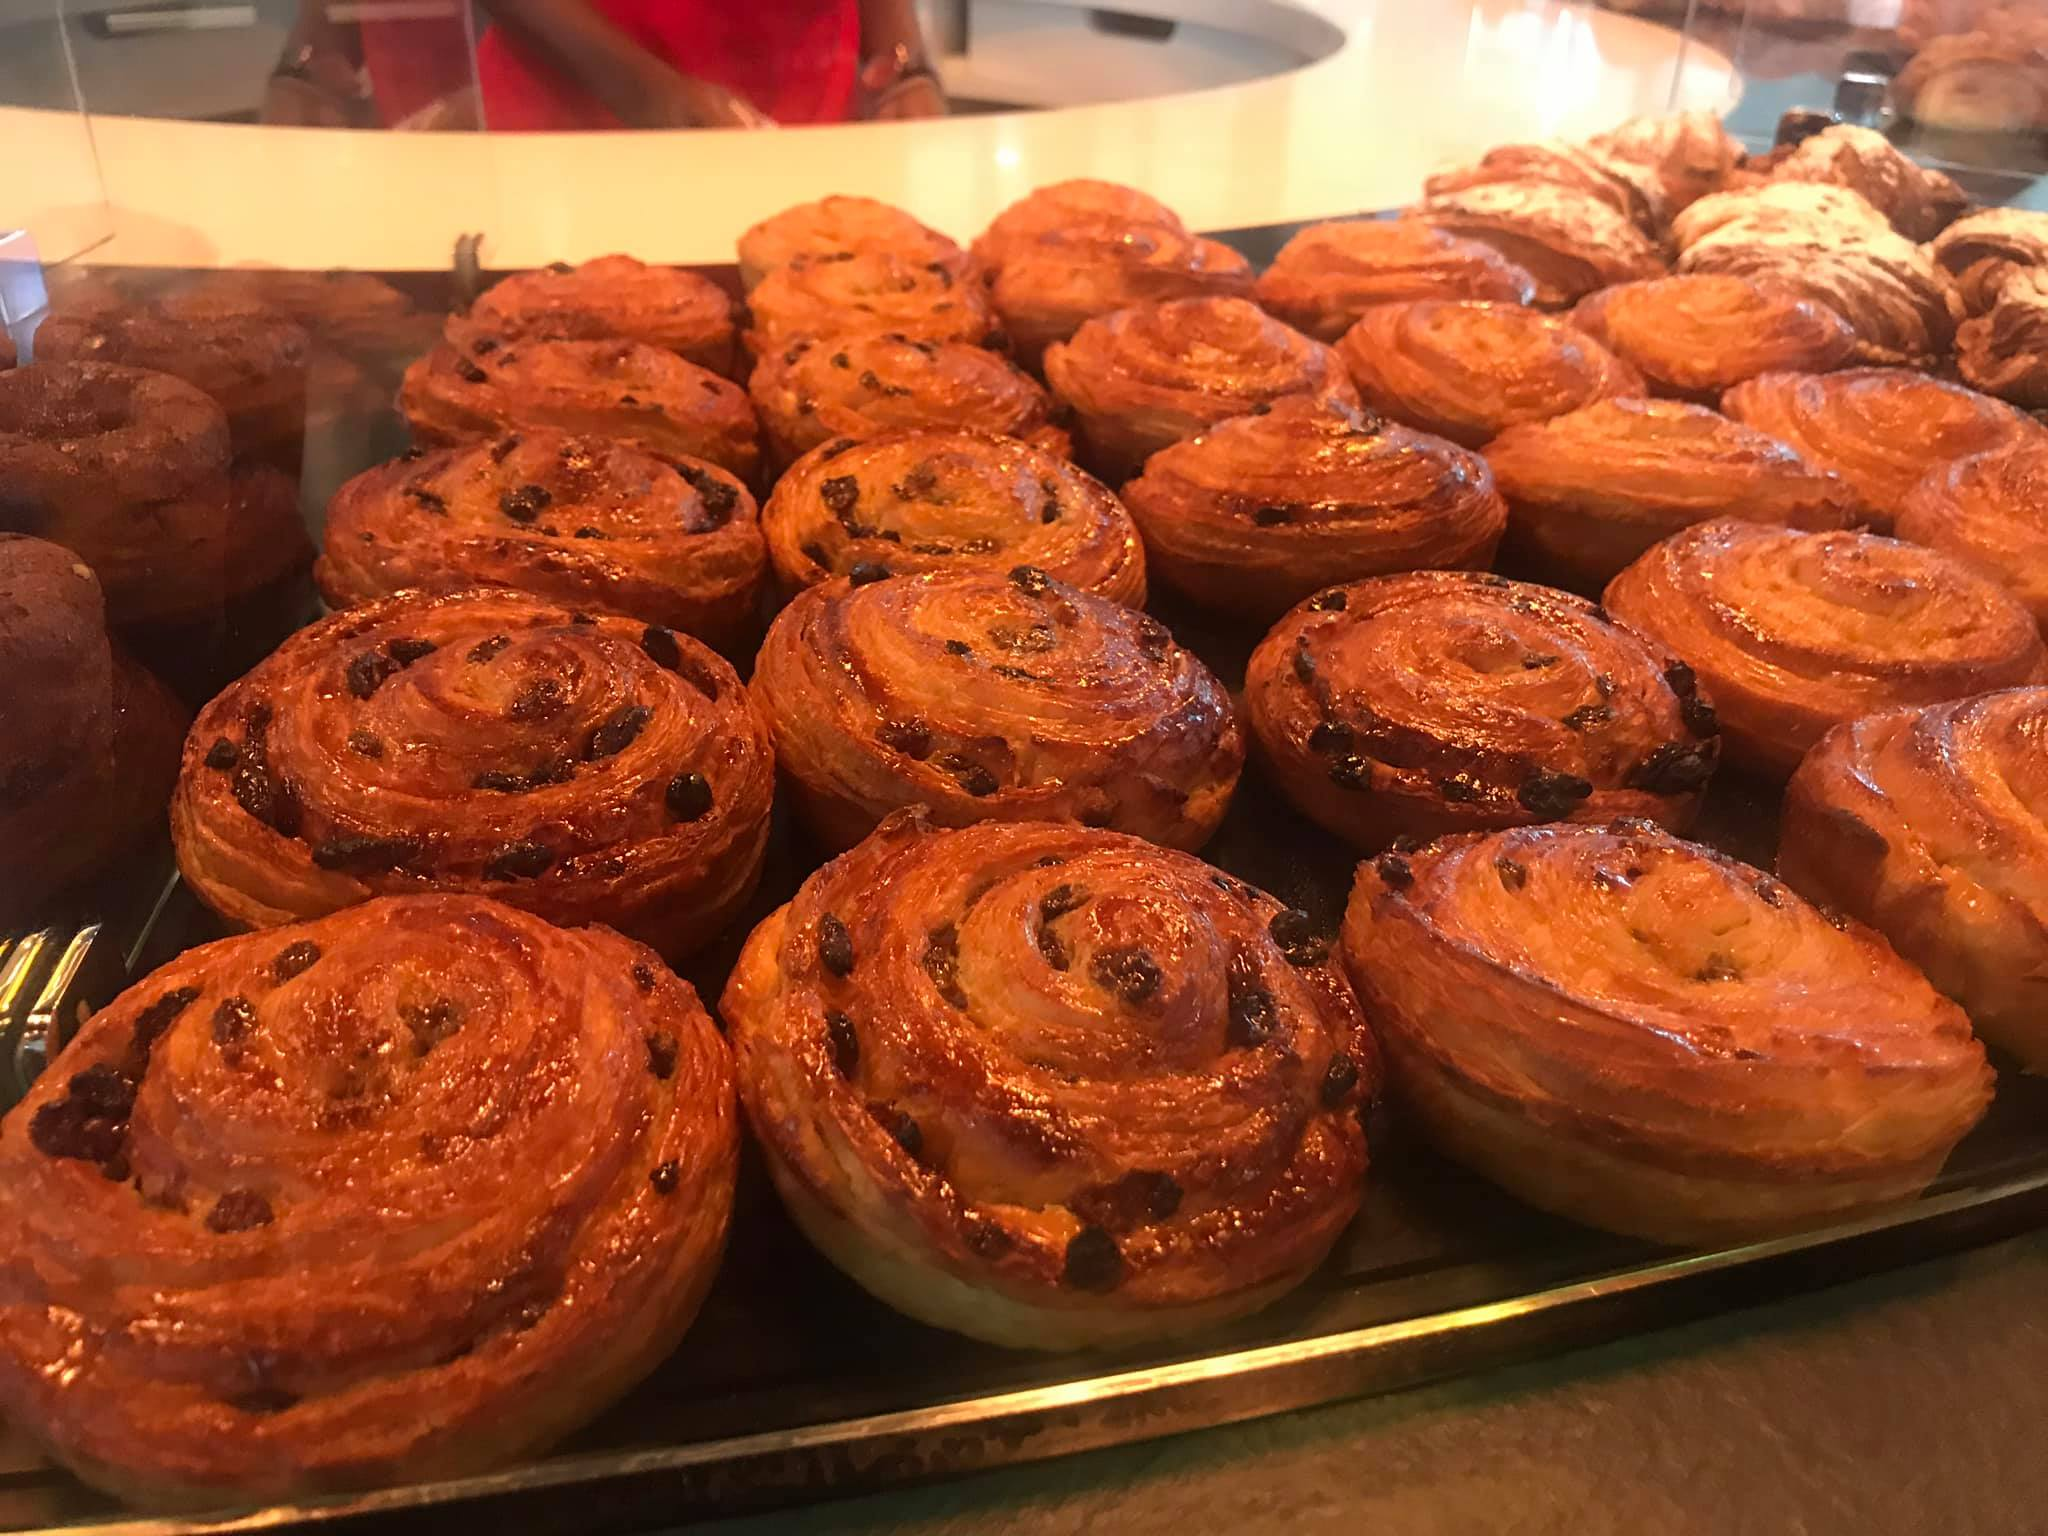 Amazing raisin buns at Le Grenier at the Riverside Building in Westlands. Absolutely delicious. They know what they are doing in the pastry department. Also they had the best coffee of the three places I had coffee in Nairobi. Their sticky bun also was beyond the one at Artcaffe